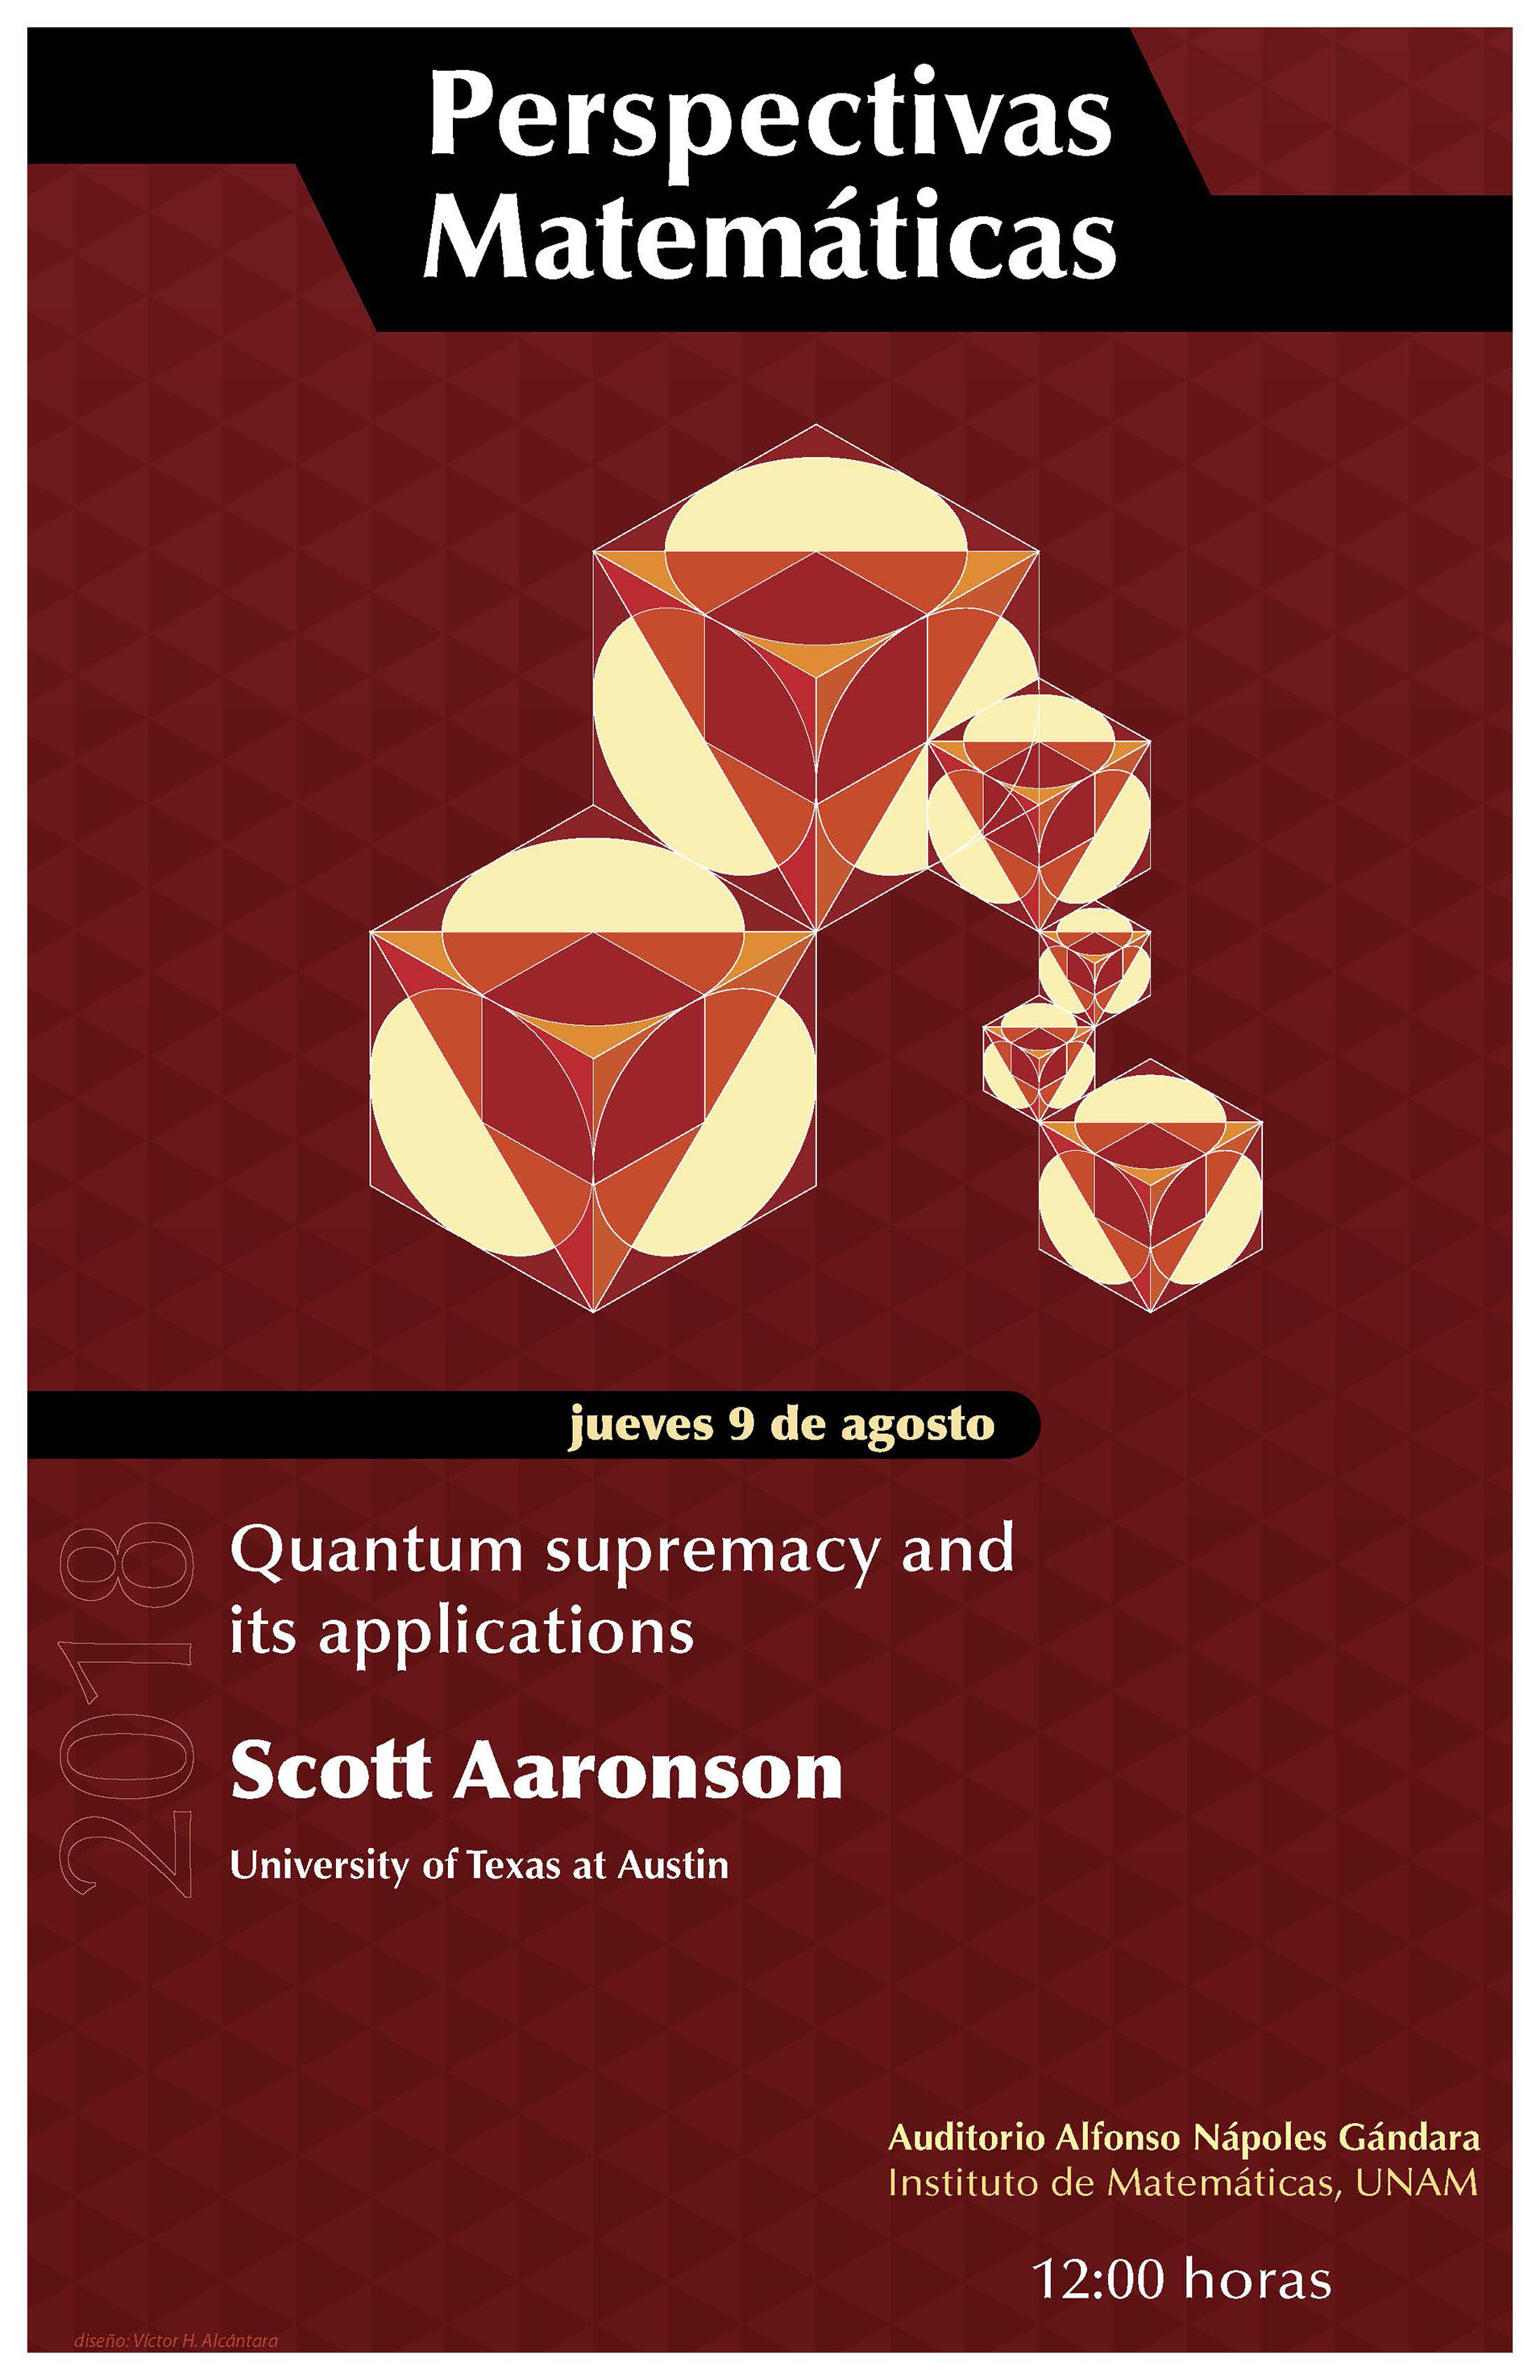 Perspectivas Matemáticas: Quantum supremacy and its applications